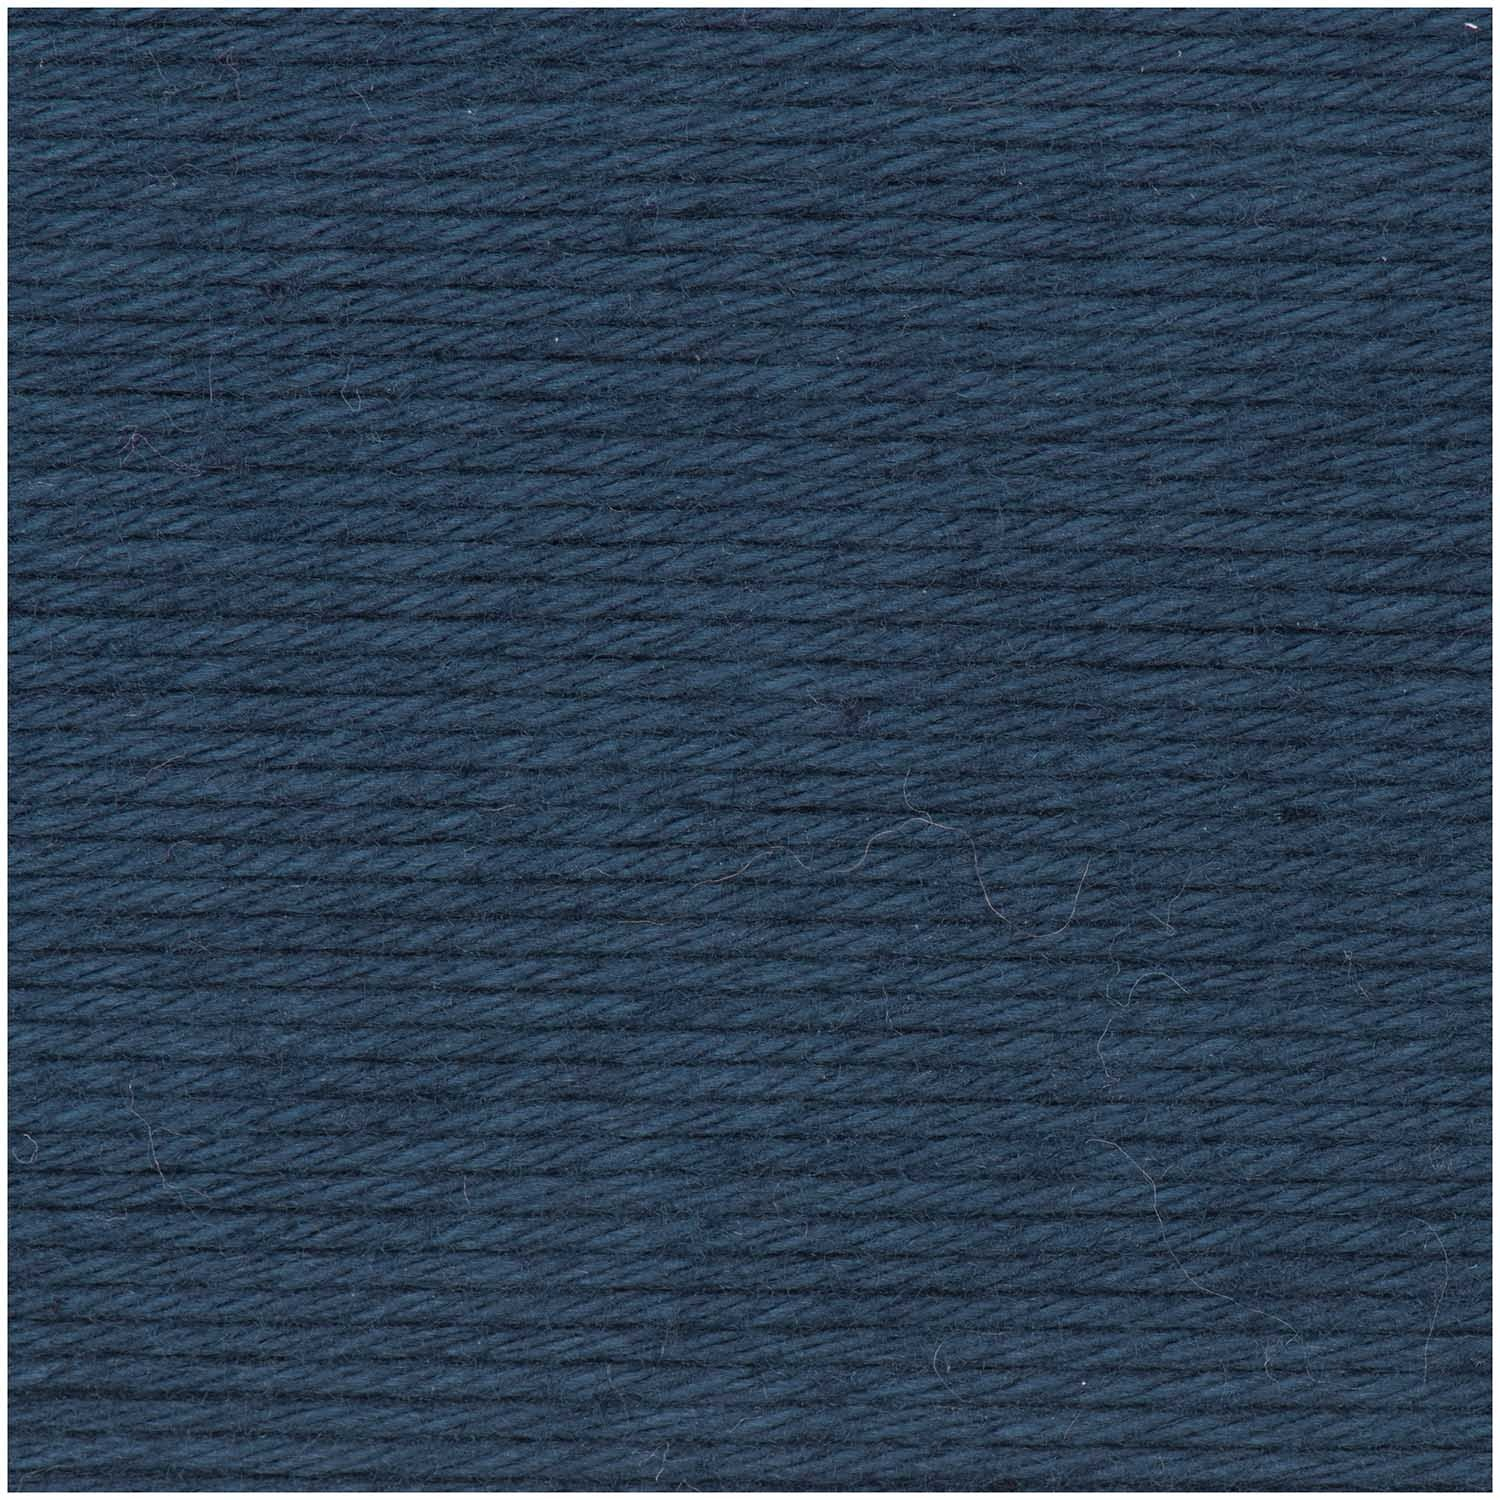 Rico Rico Baby Cotton Soft - 037 - Marine